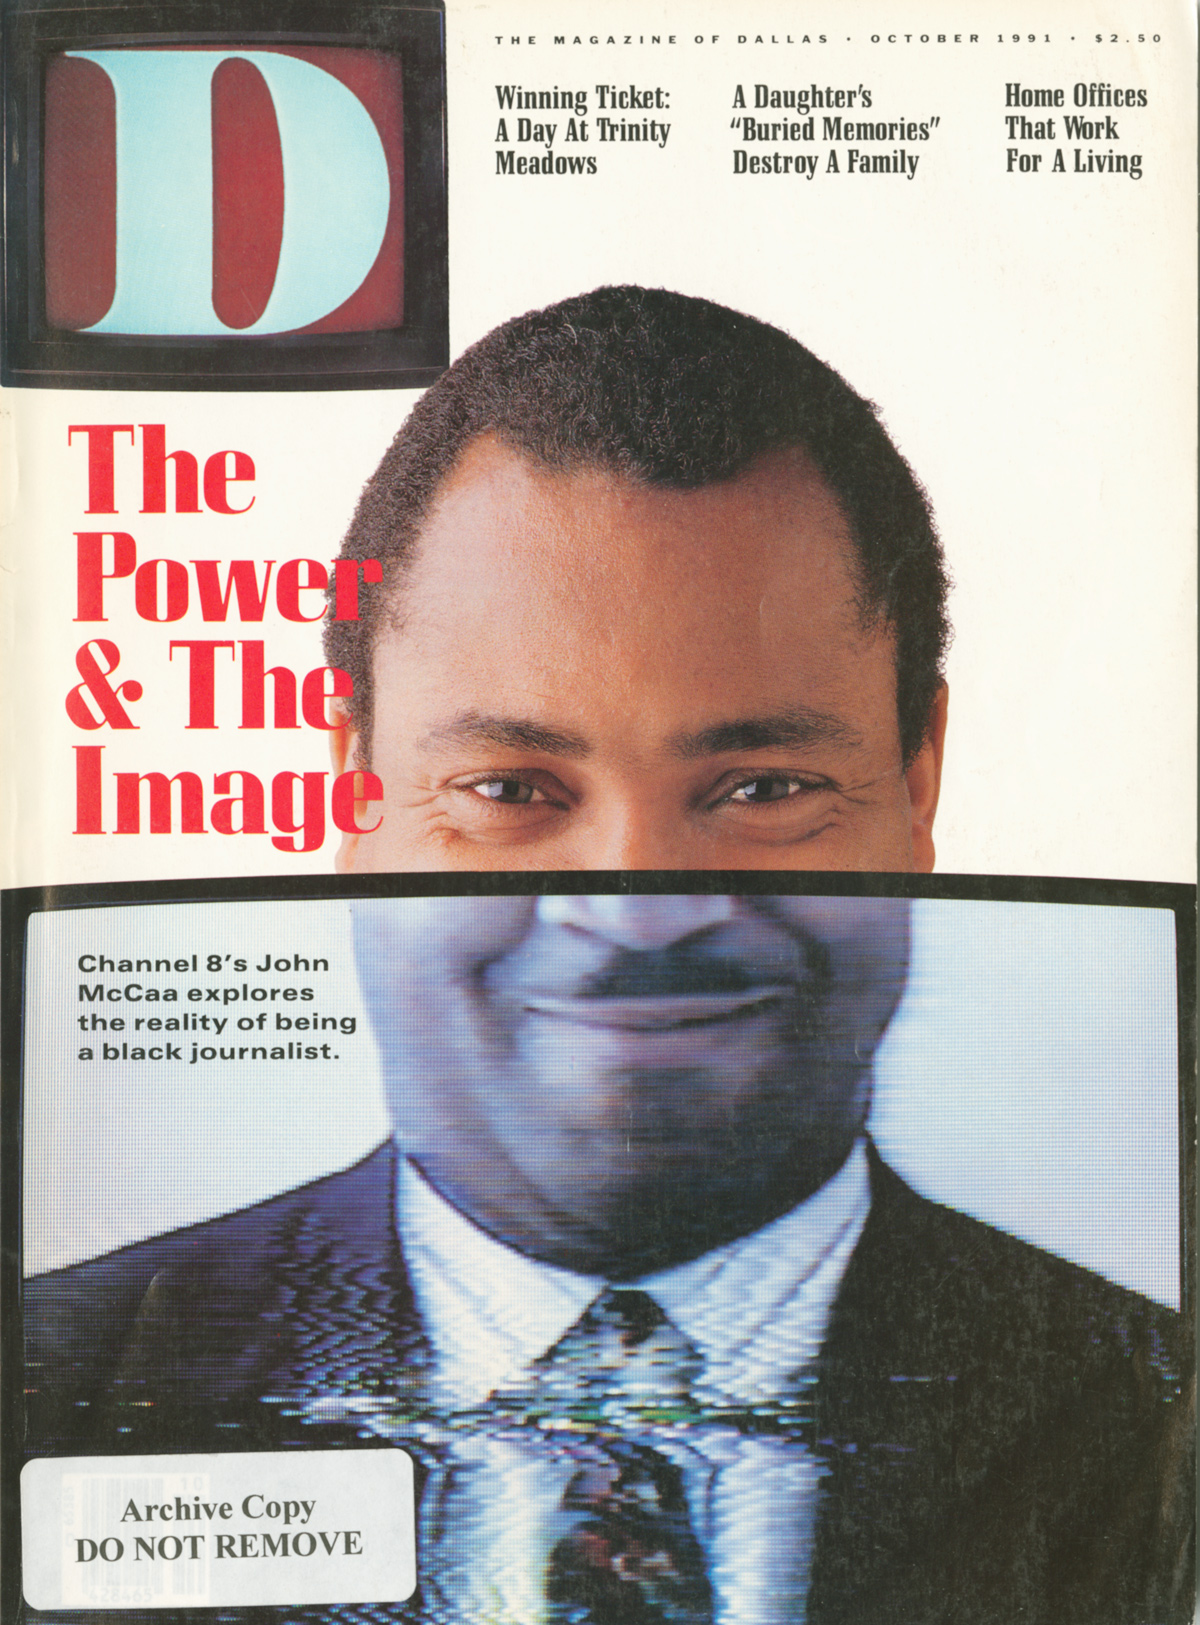 October 1991 cover